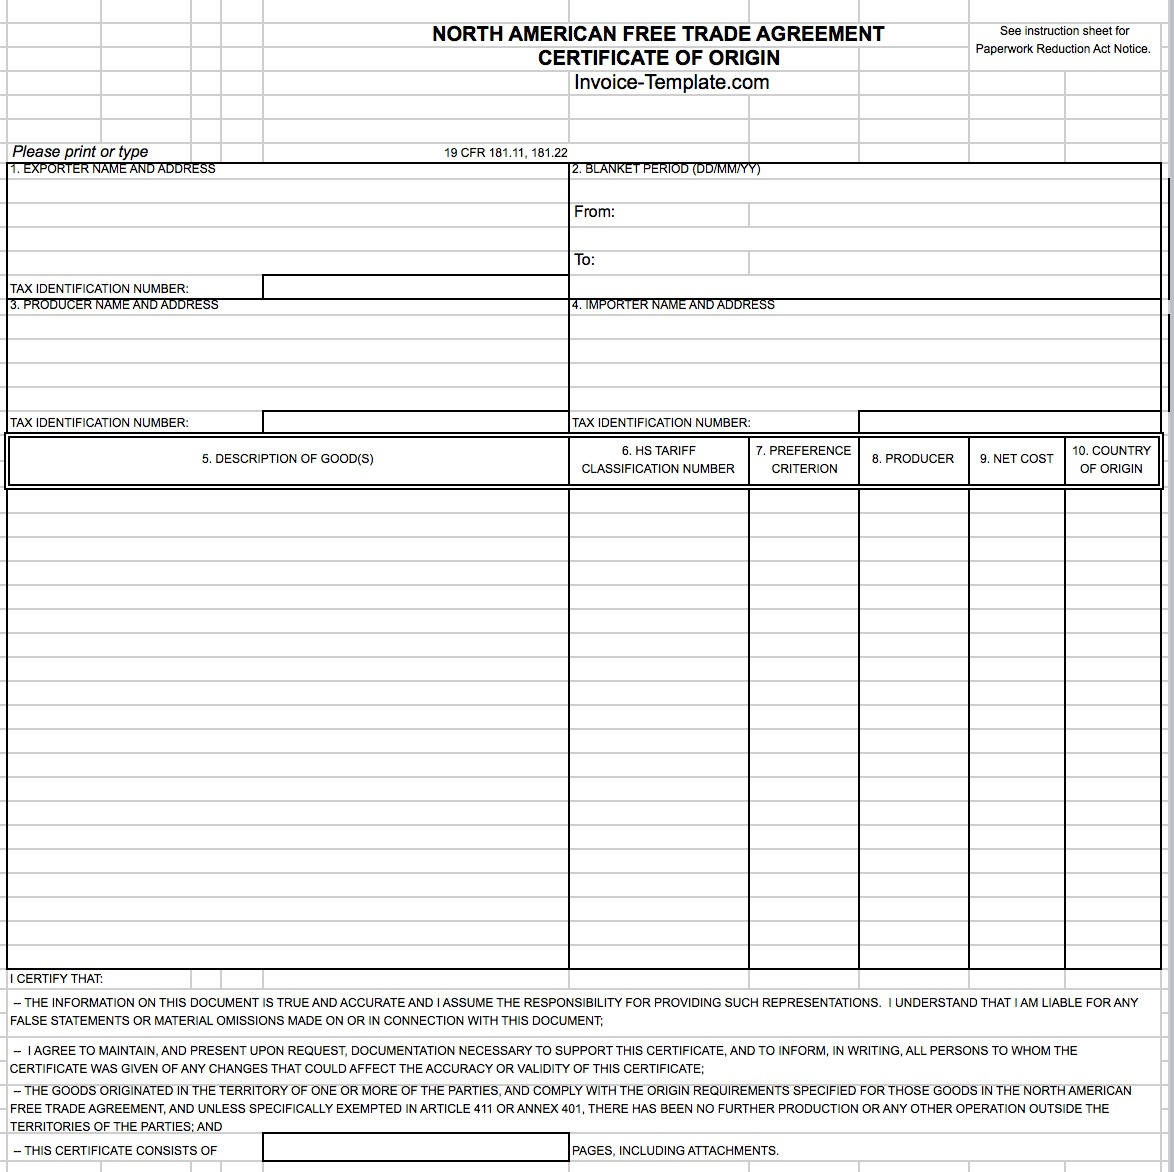 free general customs commercial invoice template | excel | pdf, Invoice templates